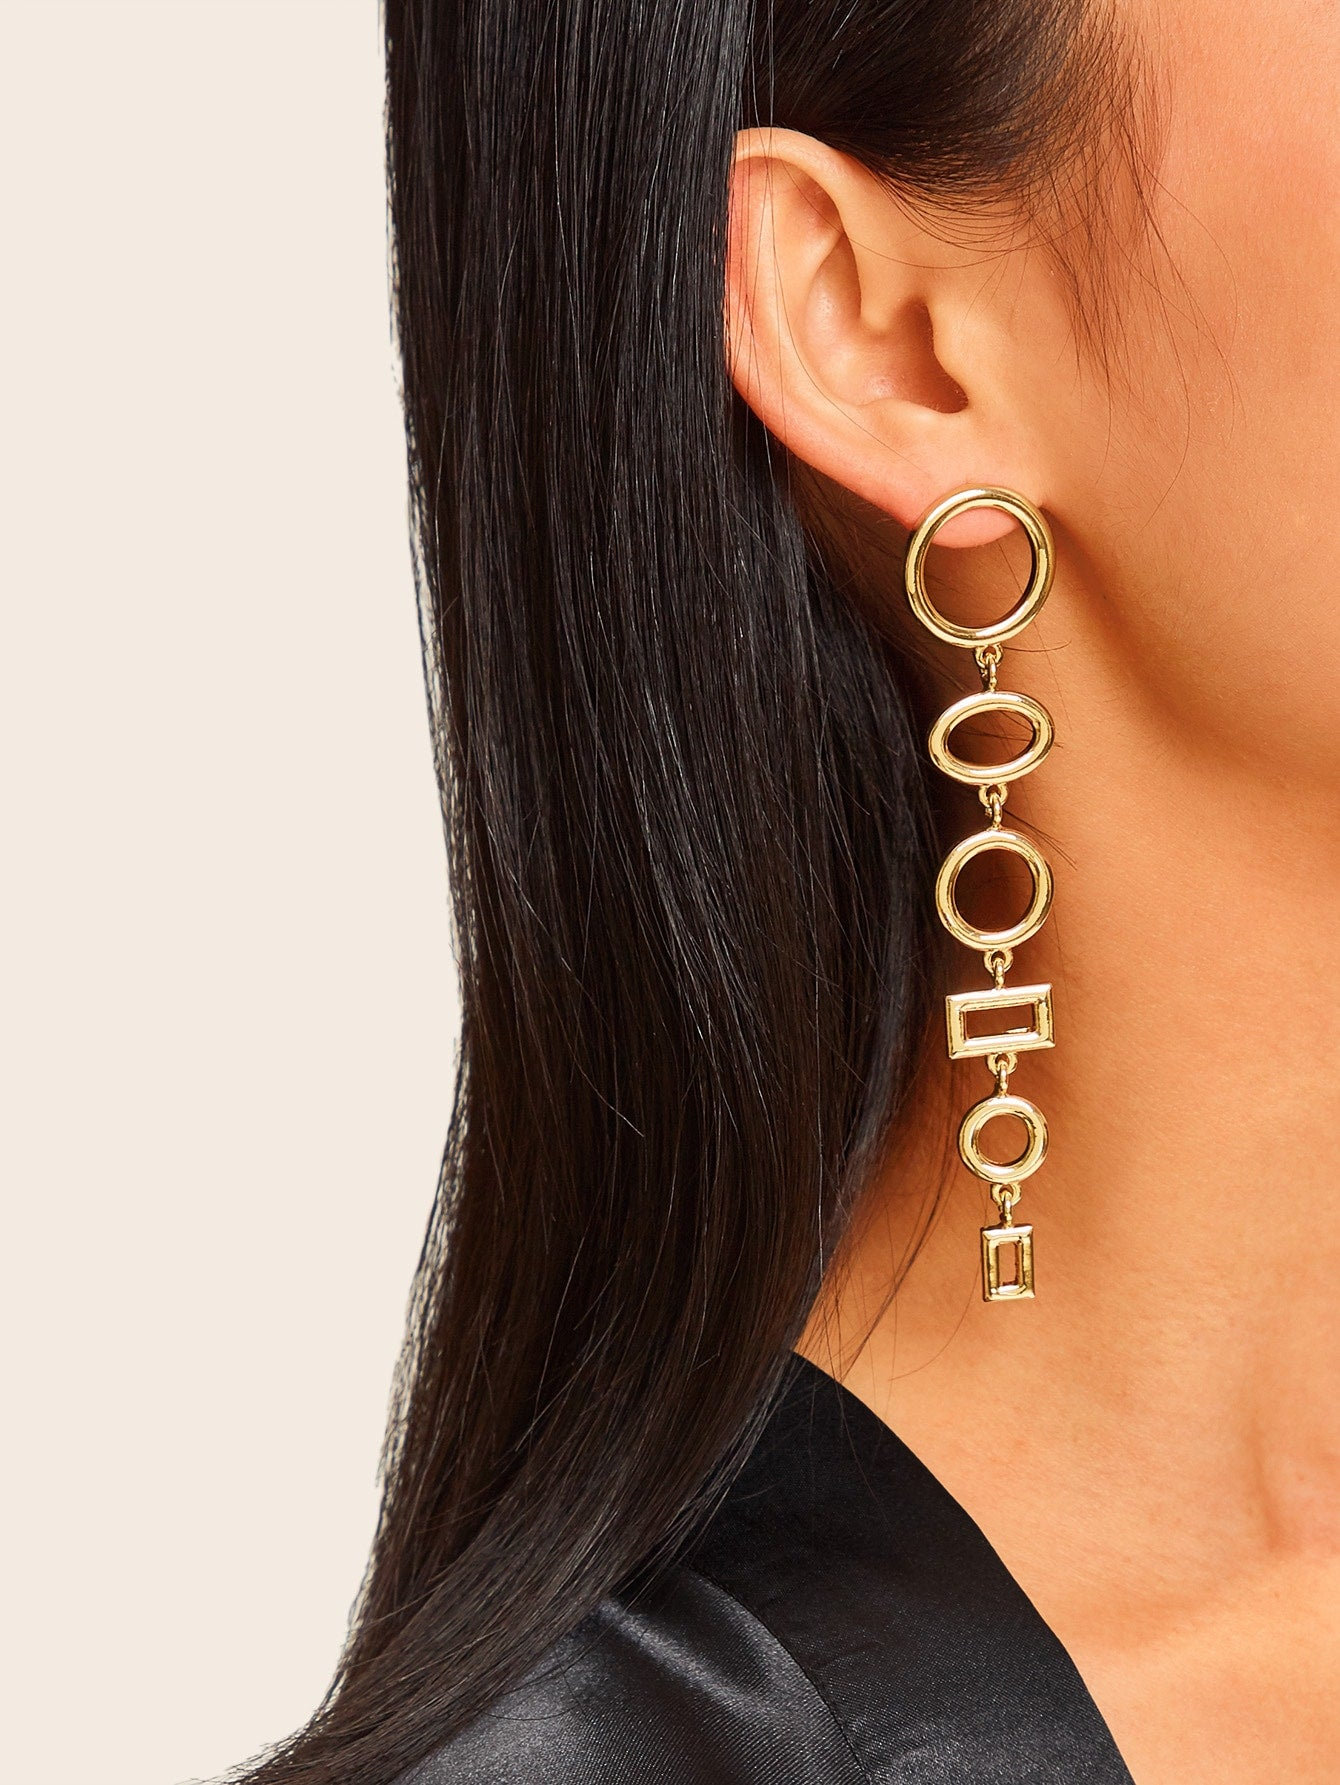 Golden Hoop & Rectangle Layered Dangle Earrings 1 Pair